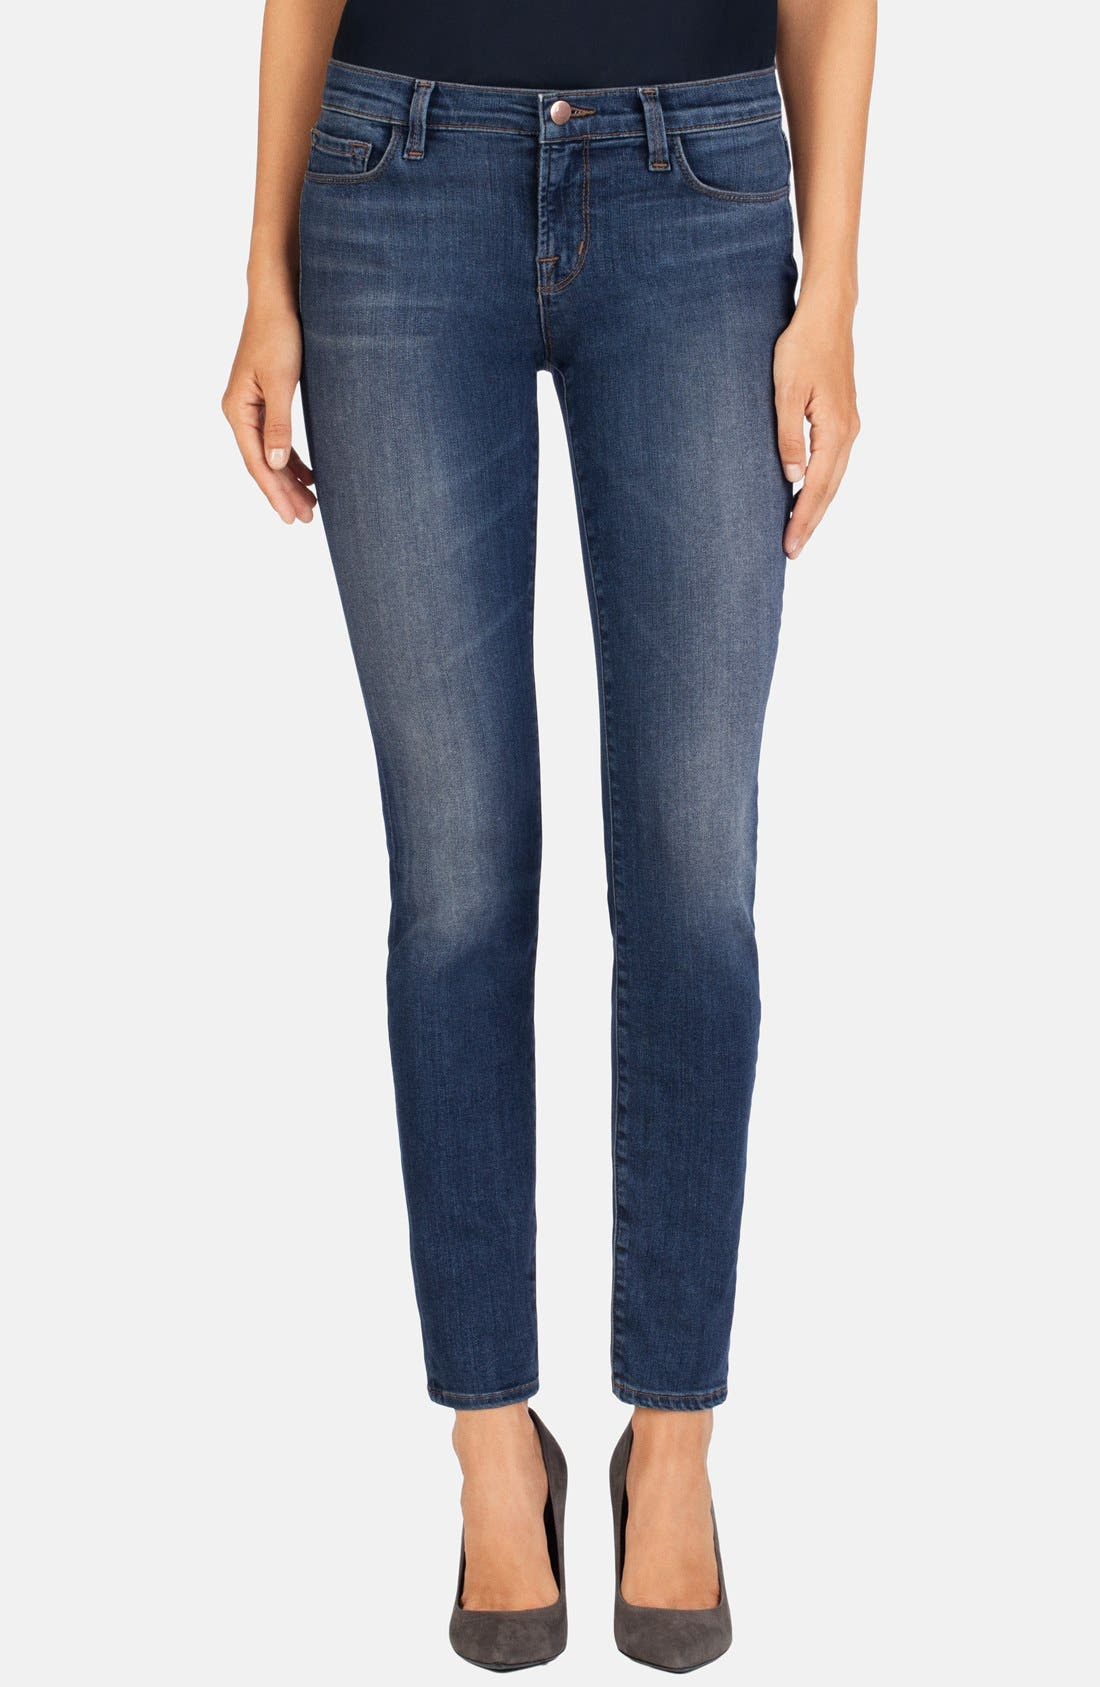 Alternate Image 1 Selected - J Brand Mid Rise Super Skinny Jeans (Lucent)